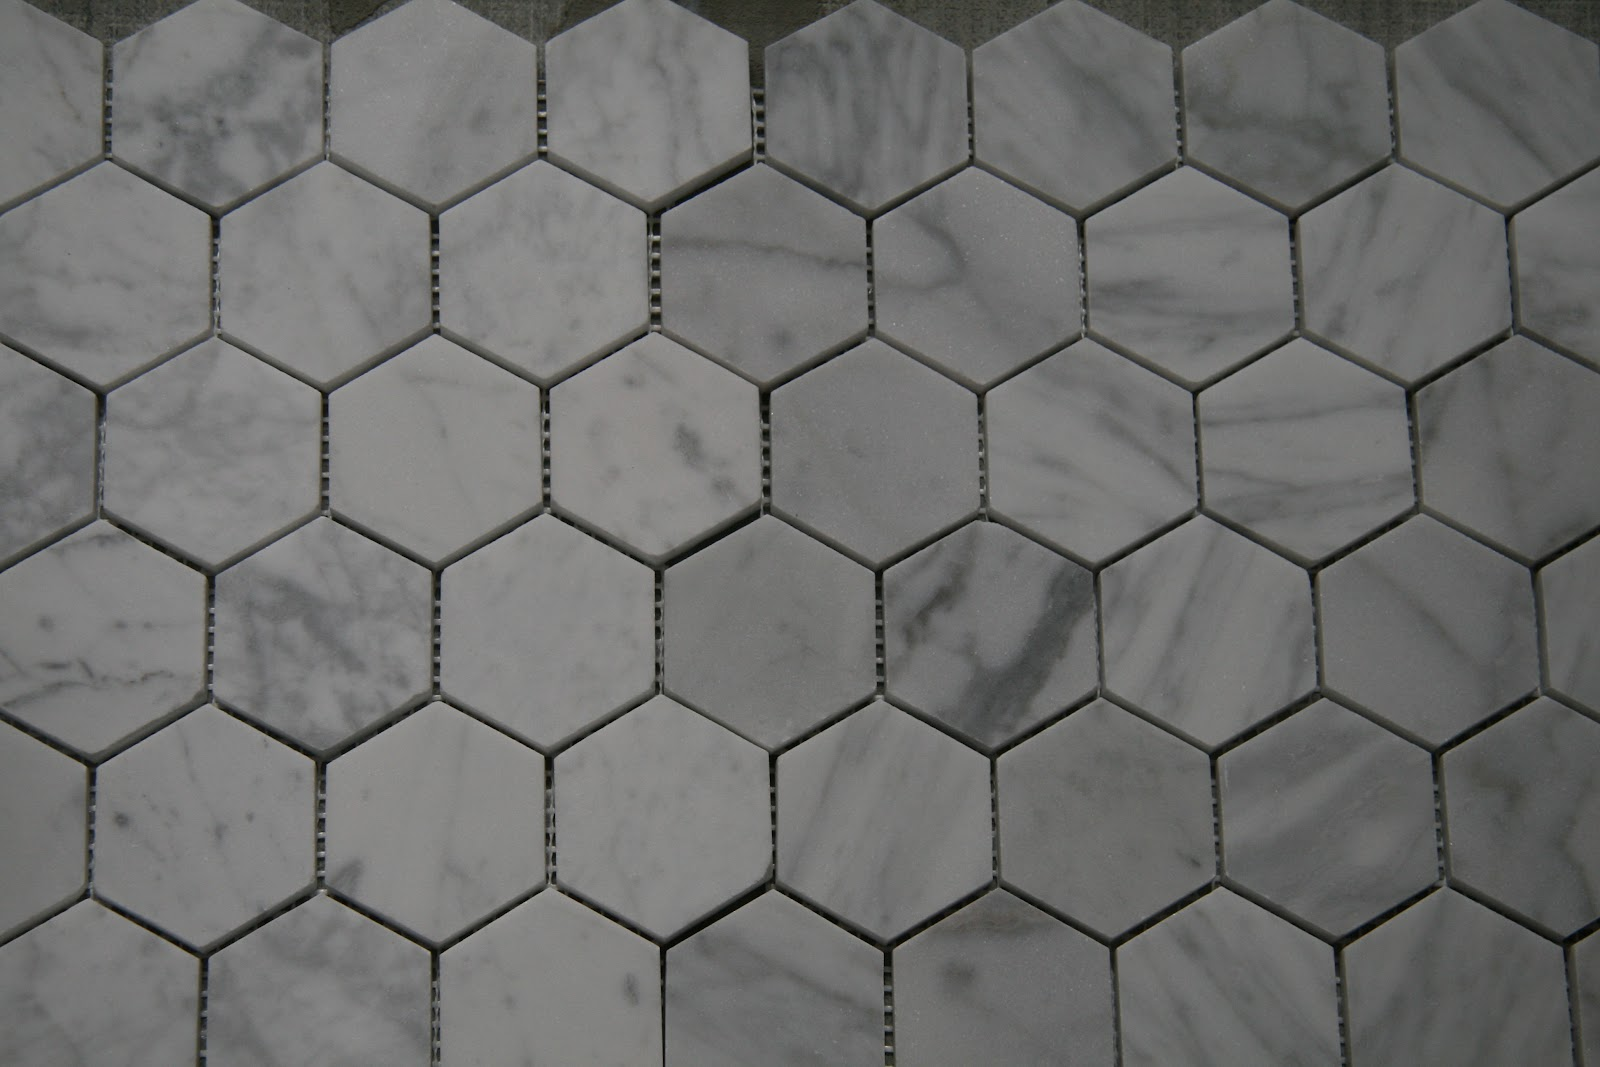 Gray Grout And Tiles